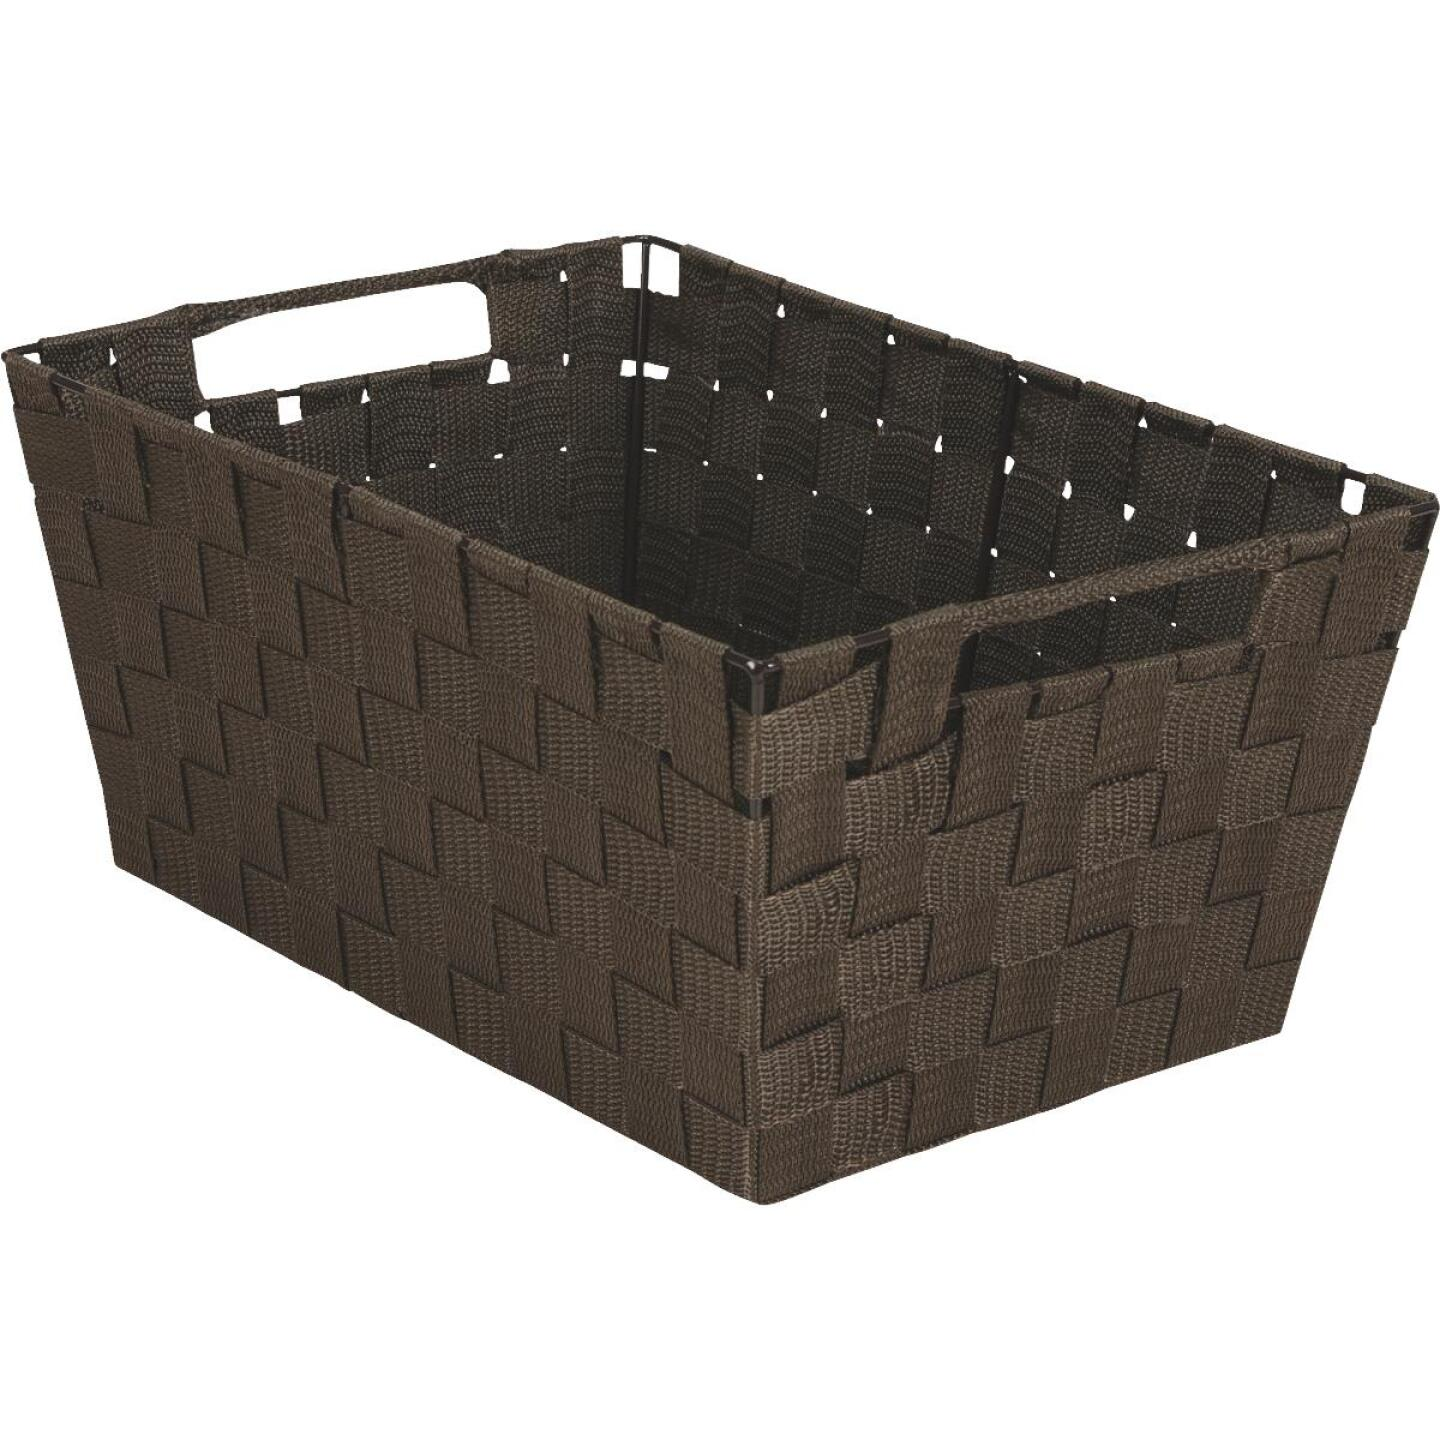 Home Impressions 10 In. W. x 6.75 In. H. x 14 In. L. Woven Storage Basket with Handles, Brown Image 1